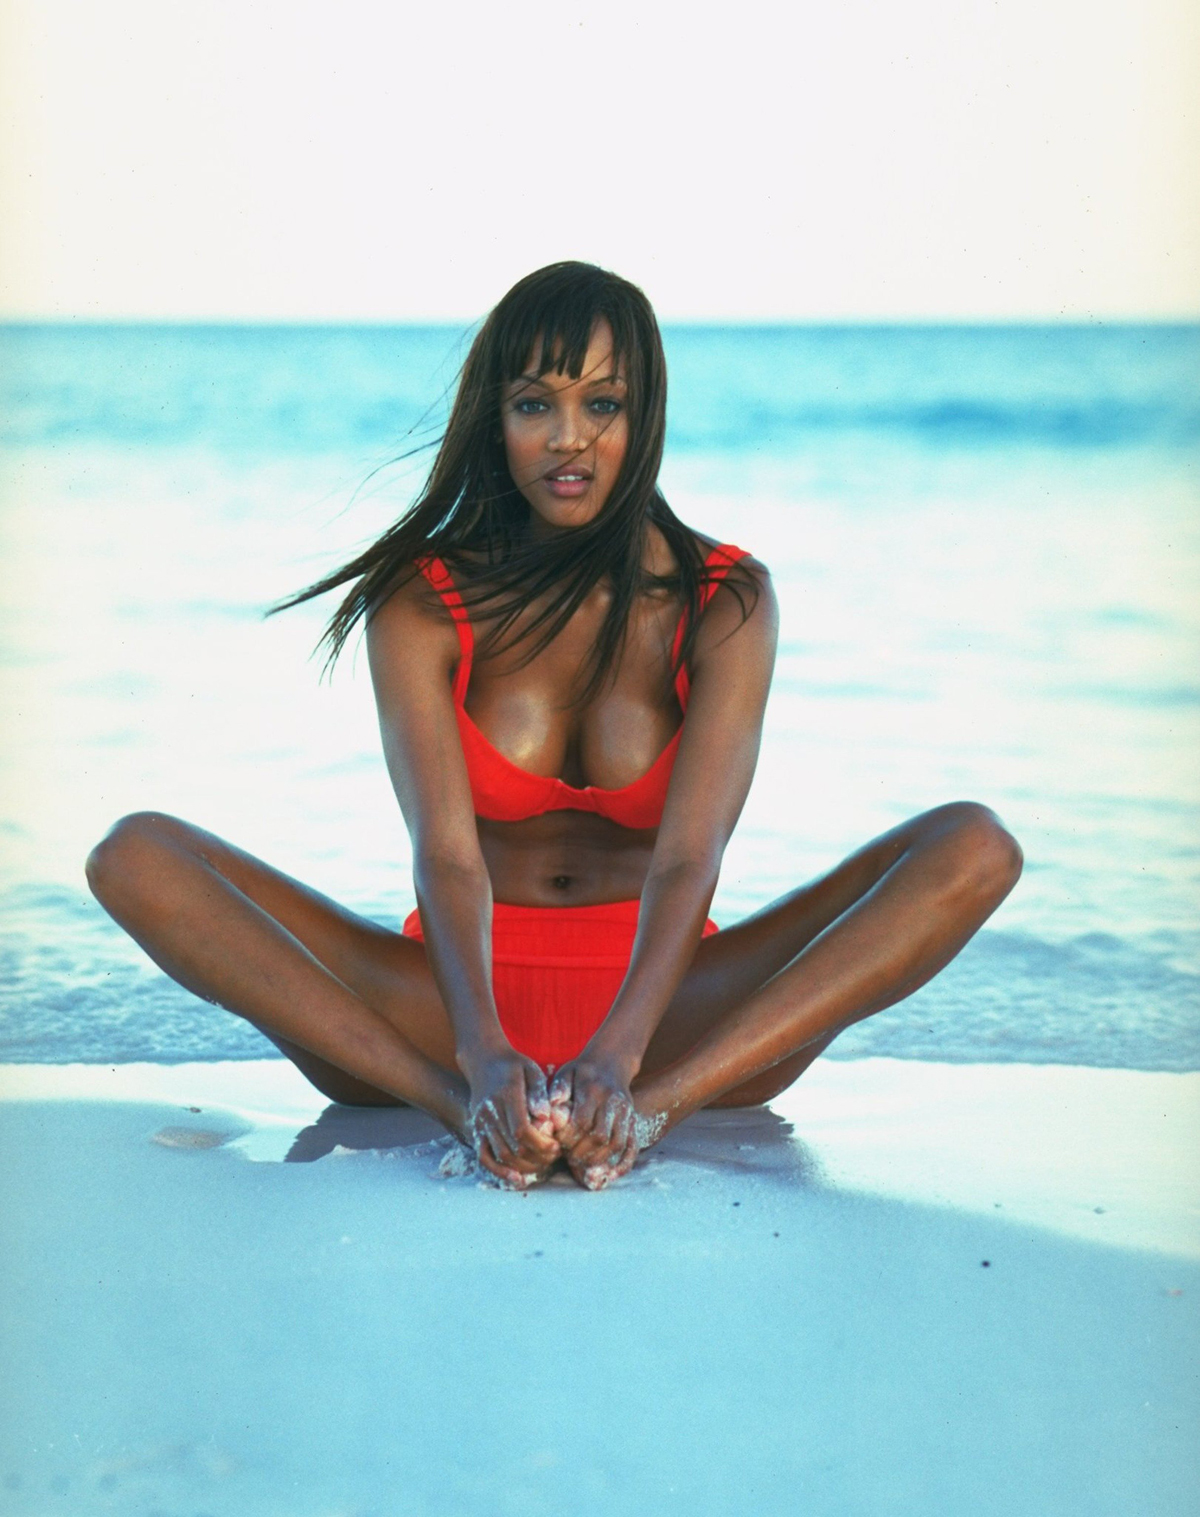 Bahamas, Swimsuit 1997